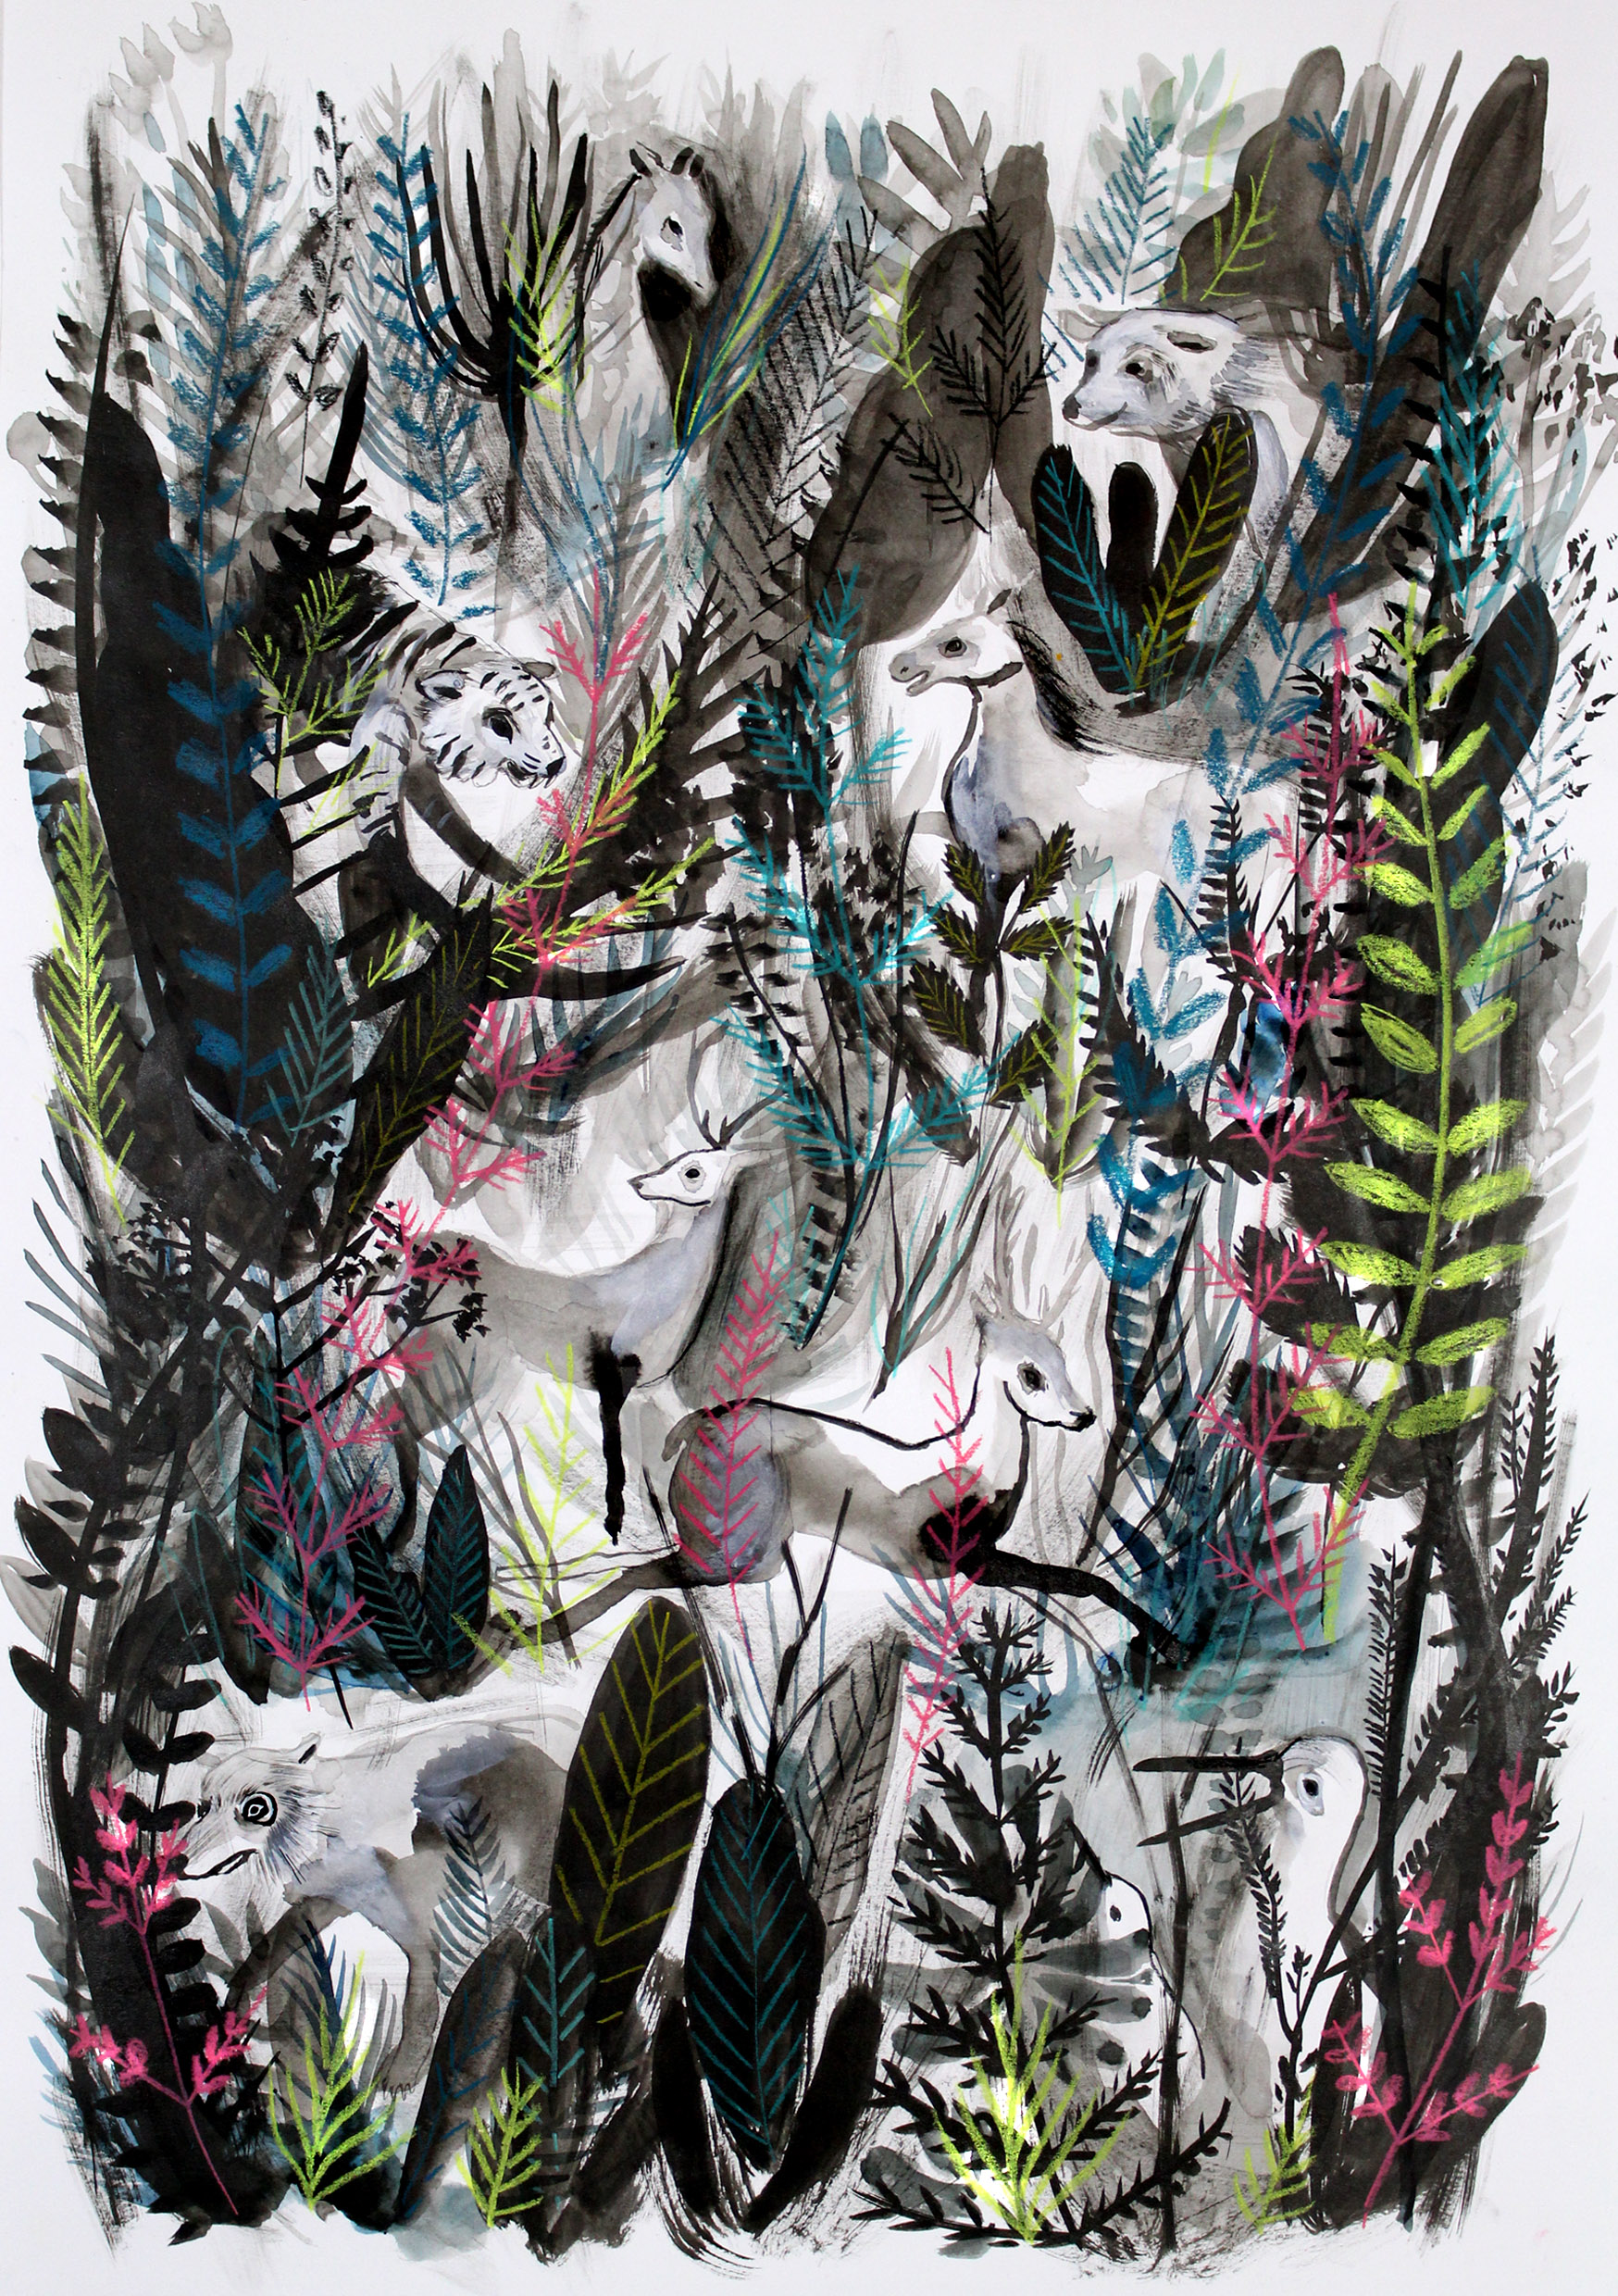 A world without humans, wild, jungle, nature, animals, plants, flora and fauna, overgrown. Ink painting for Ghost